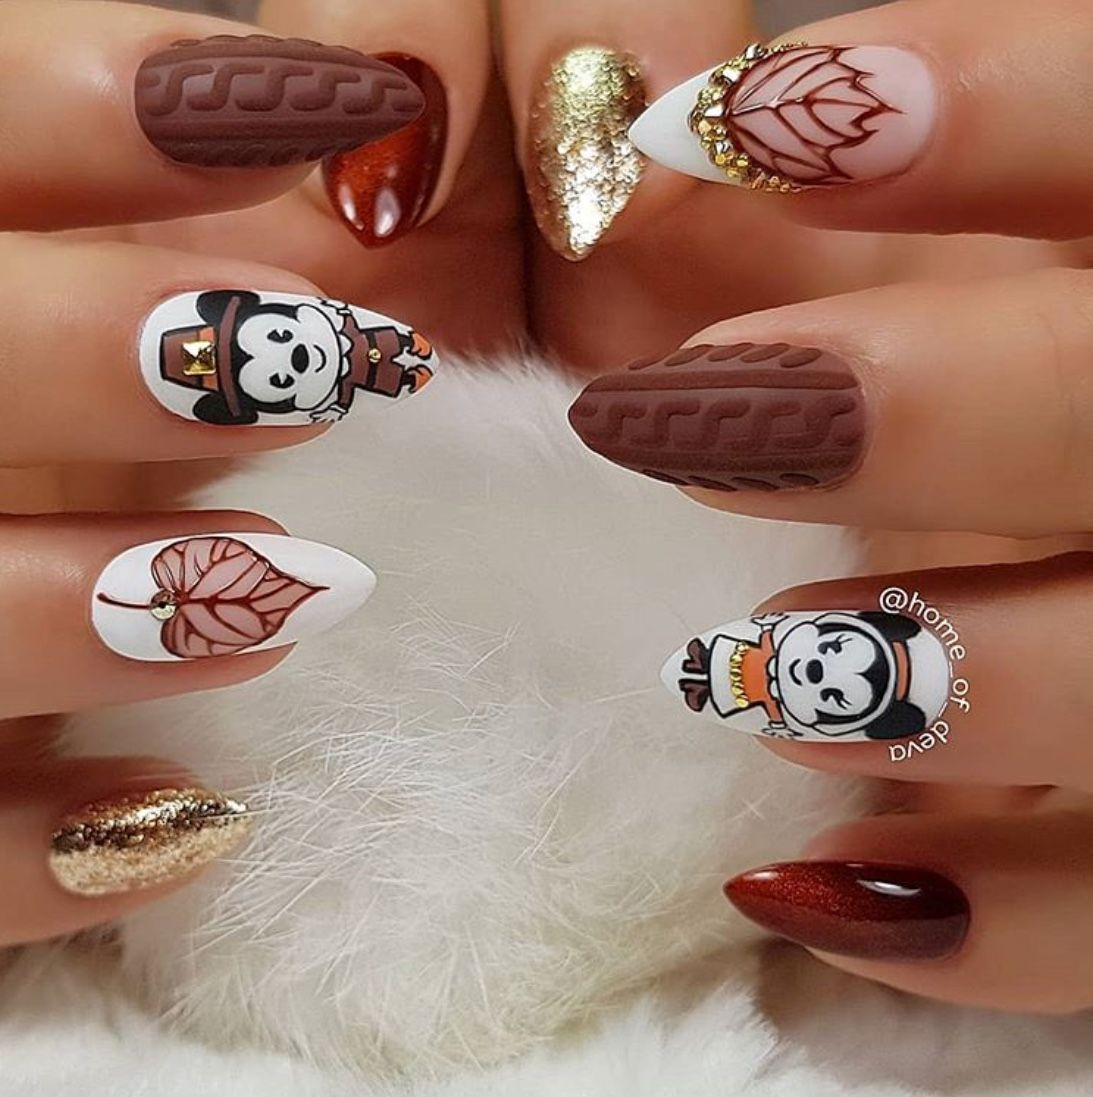 30 Stunning Thanksgiving Nail Design Ideas For 2020 The Glossychic In 2020 Thanksgiving Nail Designs Thanksgiving Nails Thanksgiving Nail Art